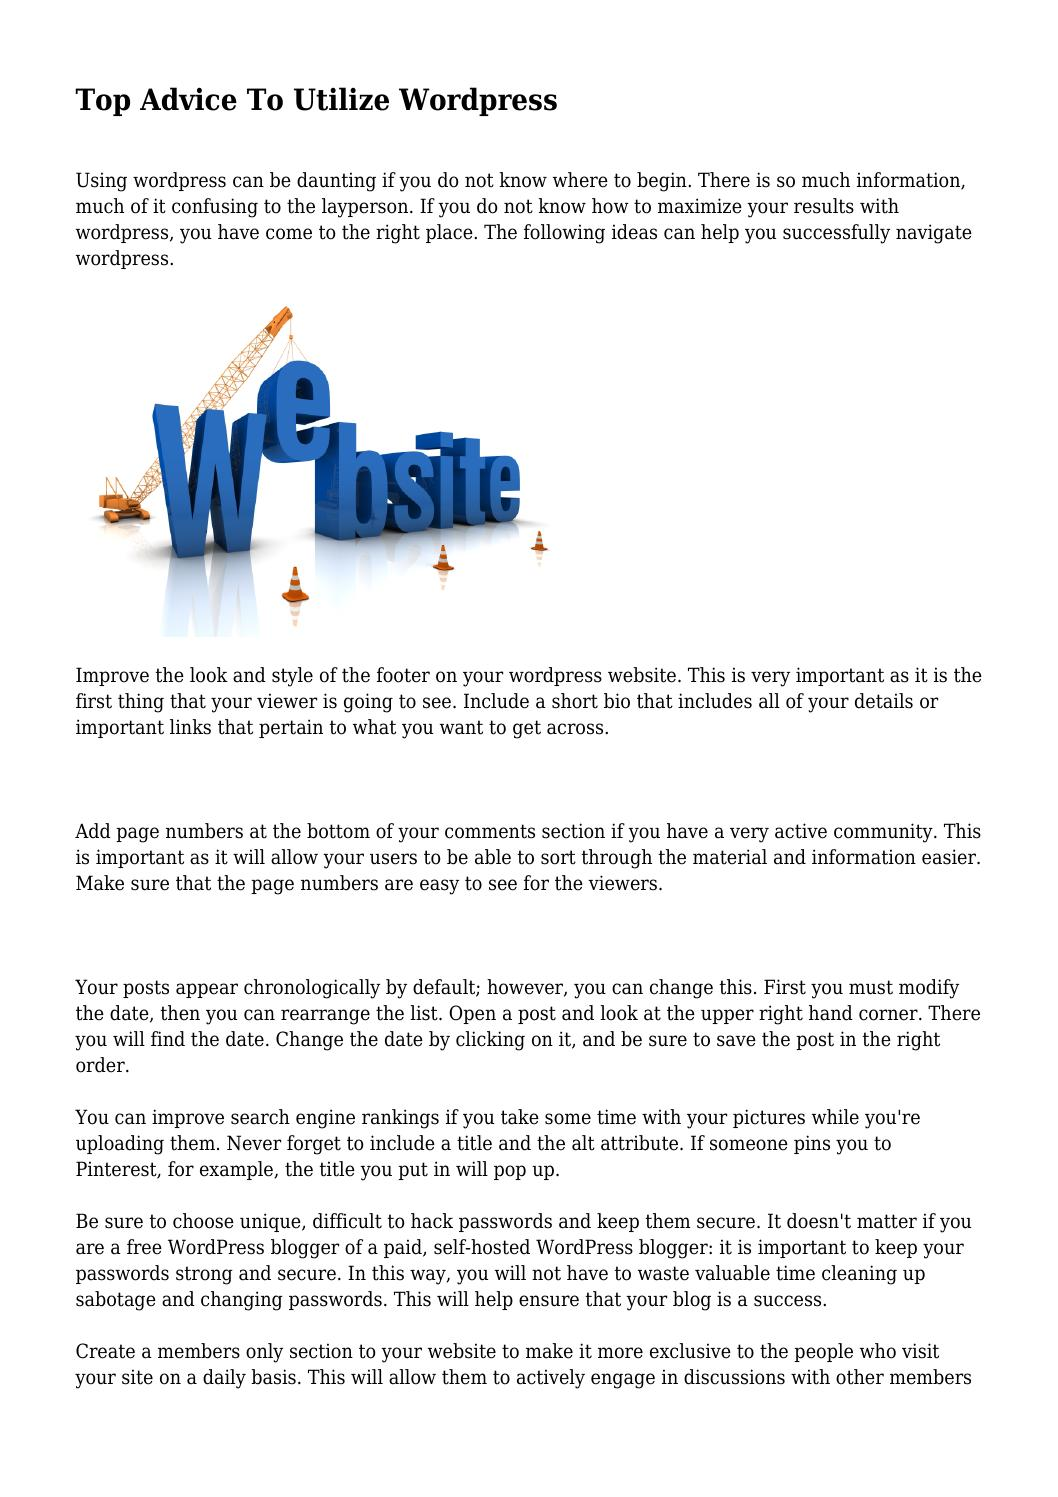 Top Advice To Utilize Wordpress by glamorousquack271 - issuu